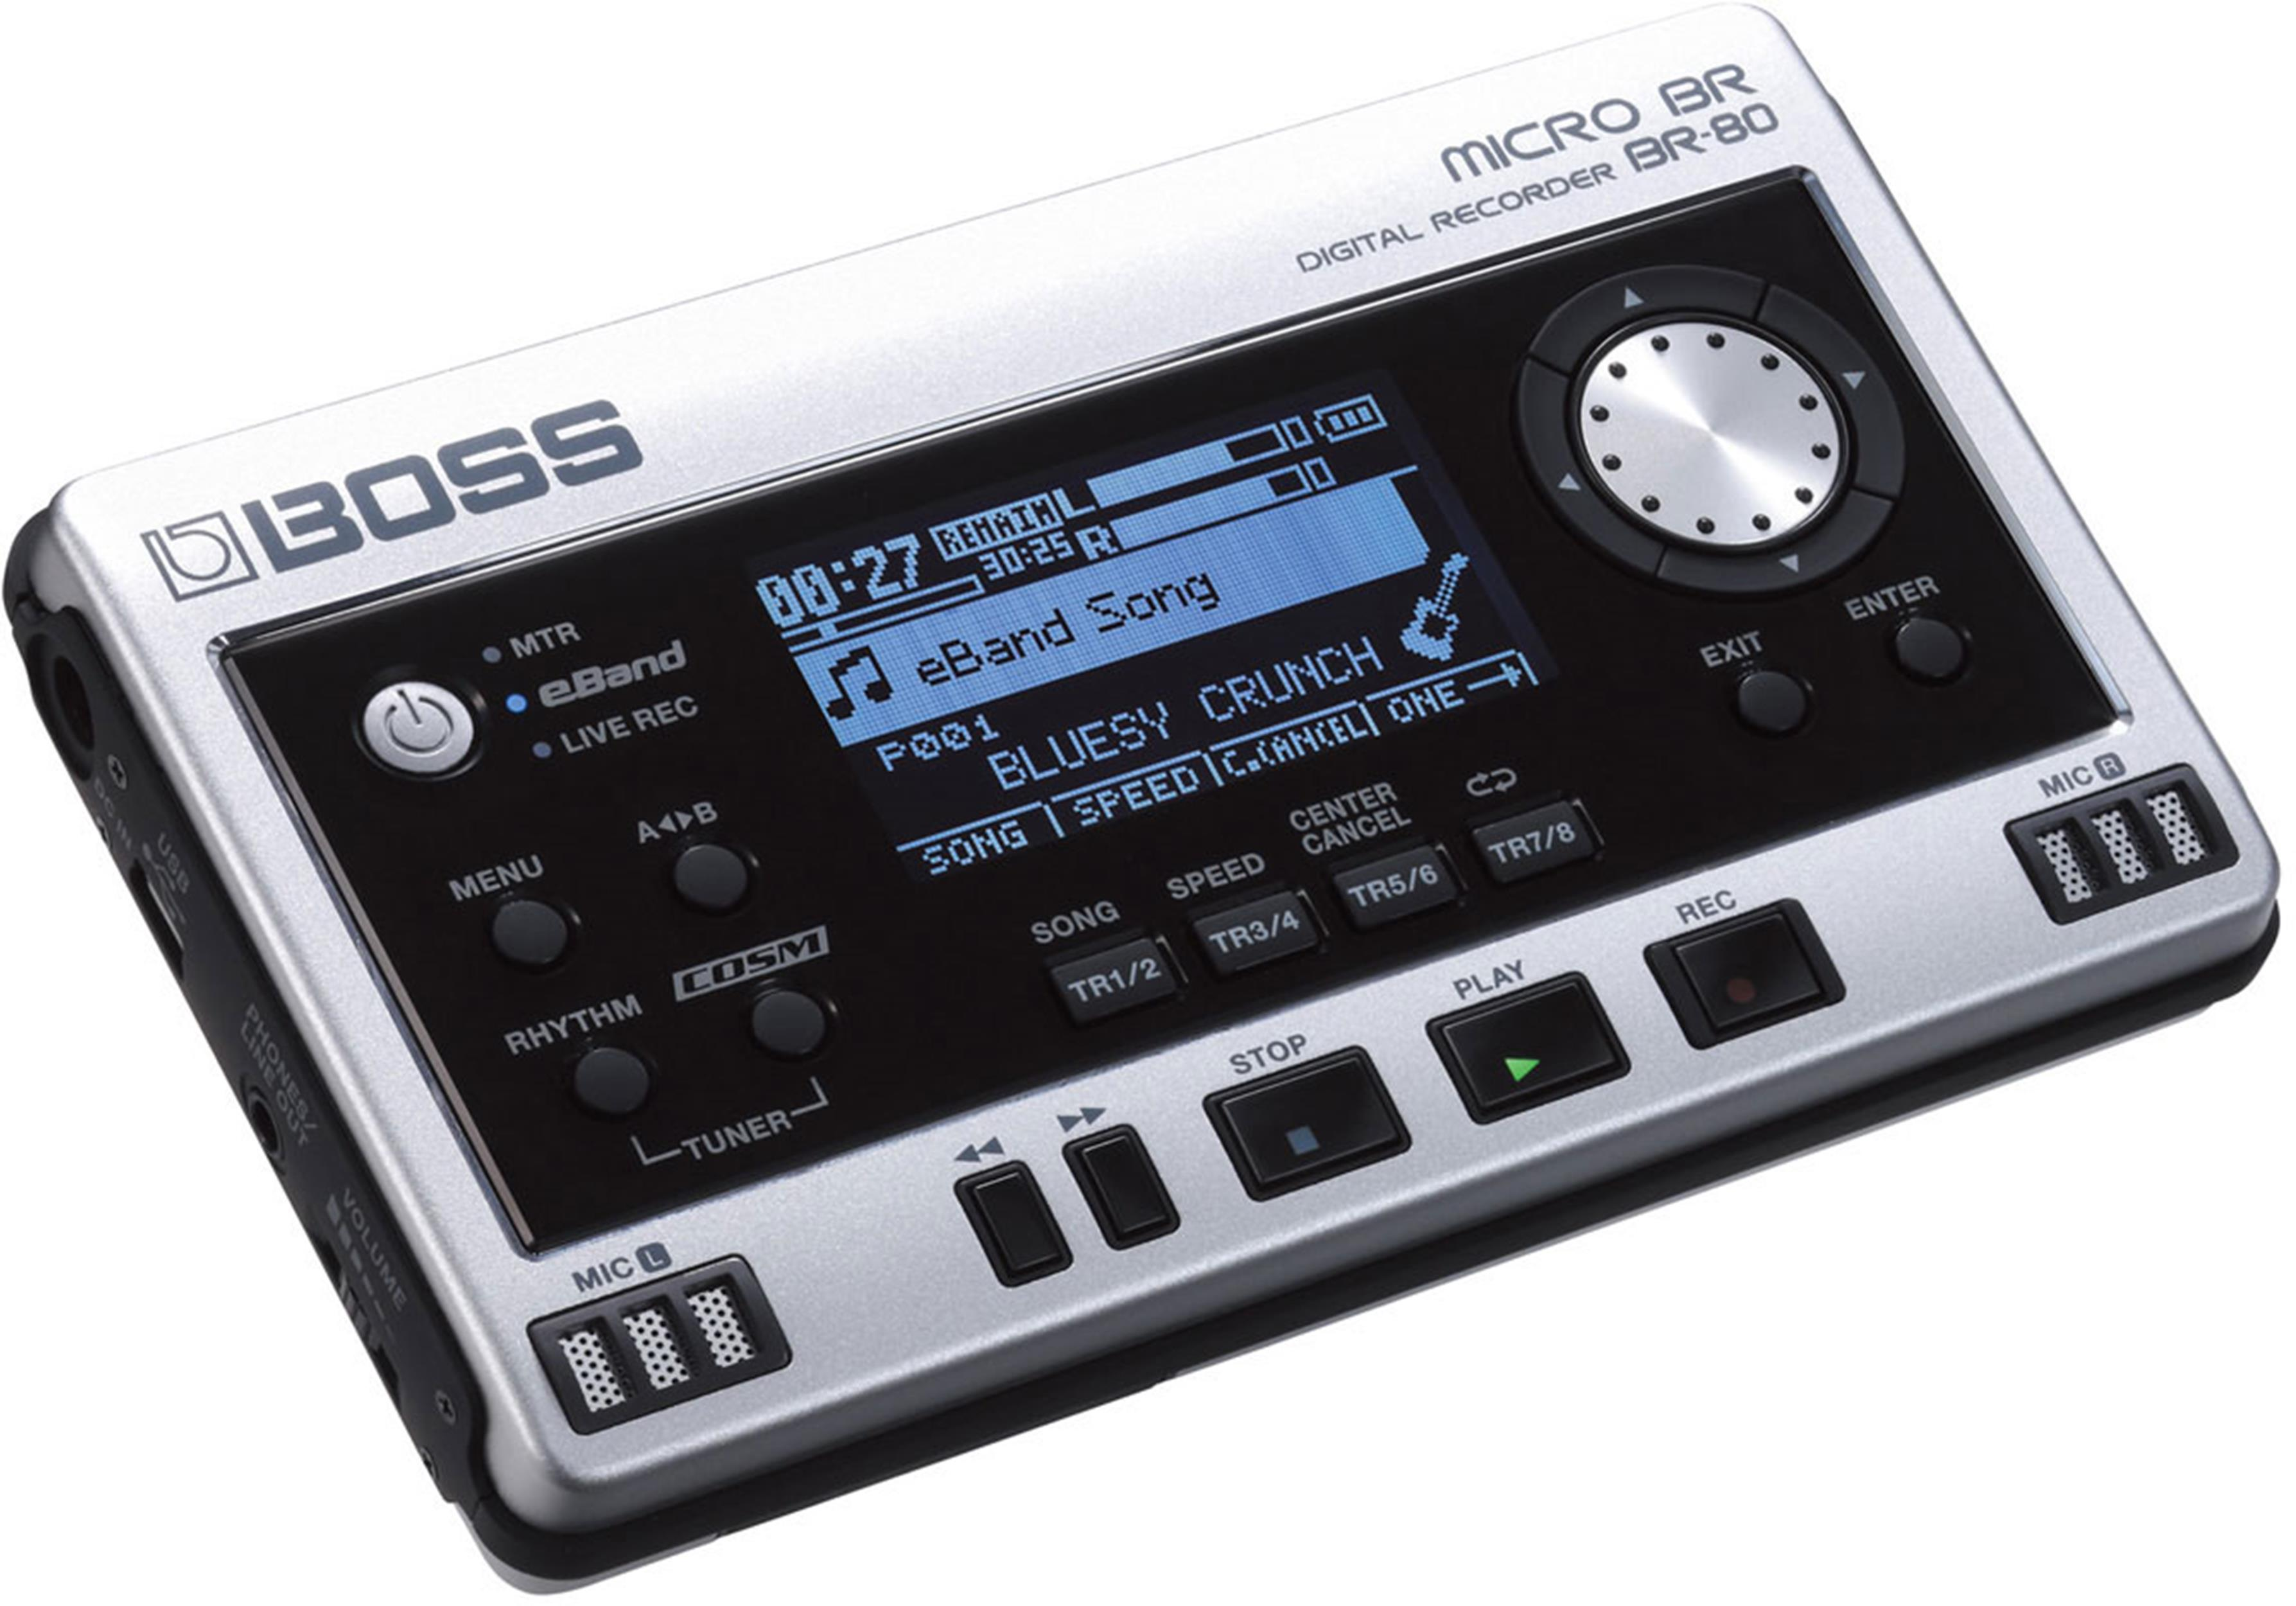 BOSS BR 80 MICRO BR DIGITAL RECORDER